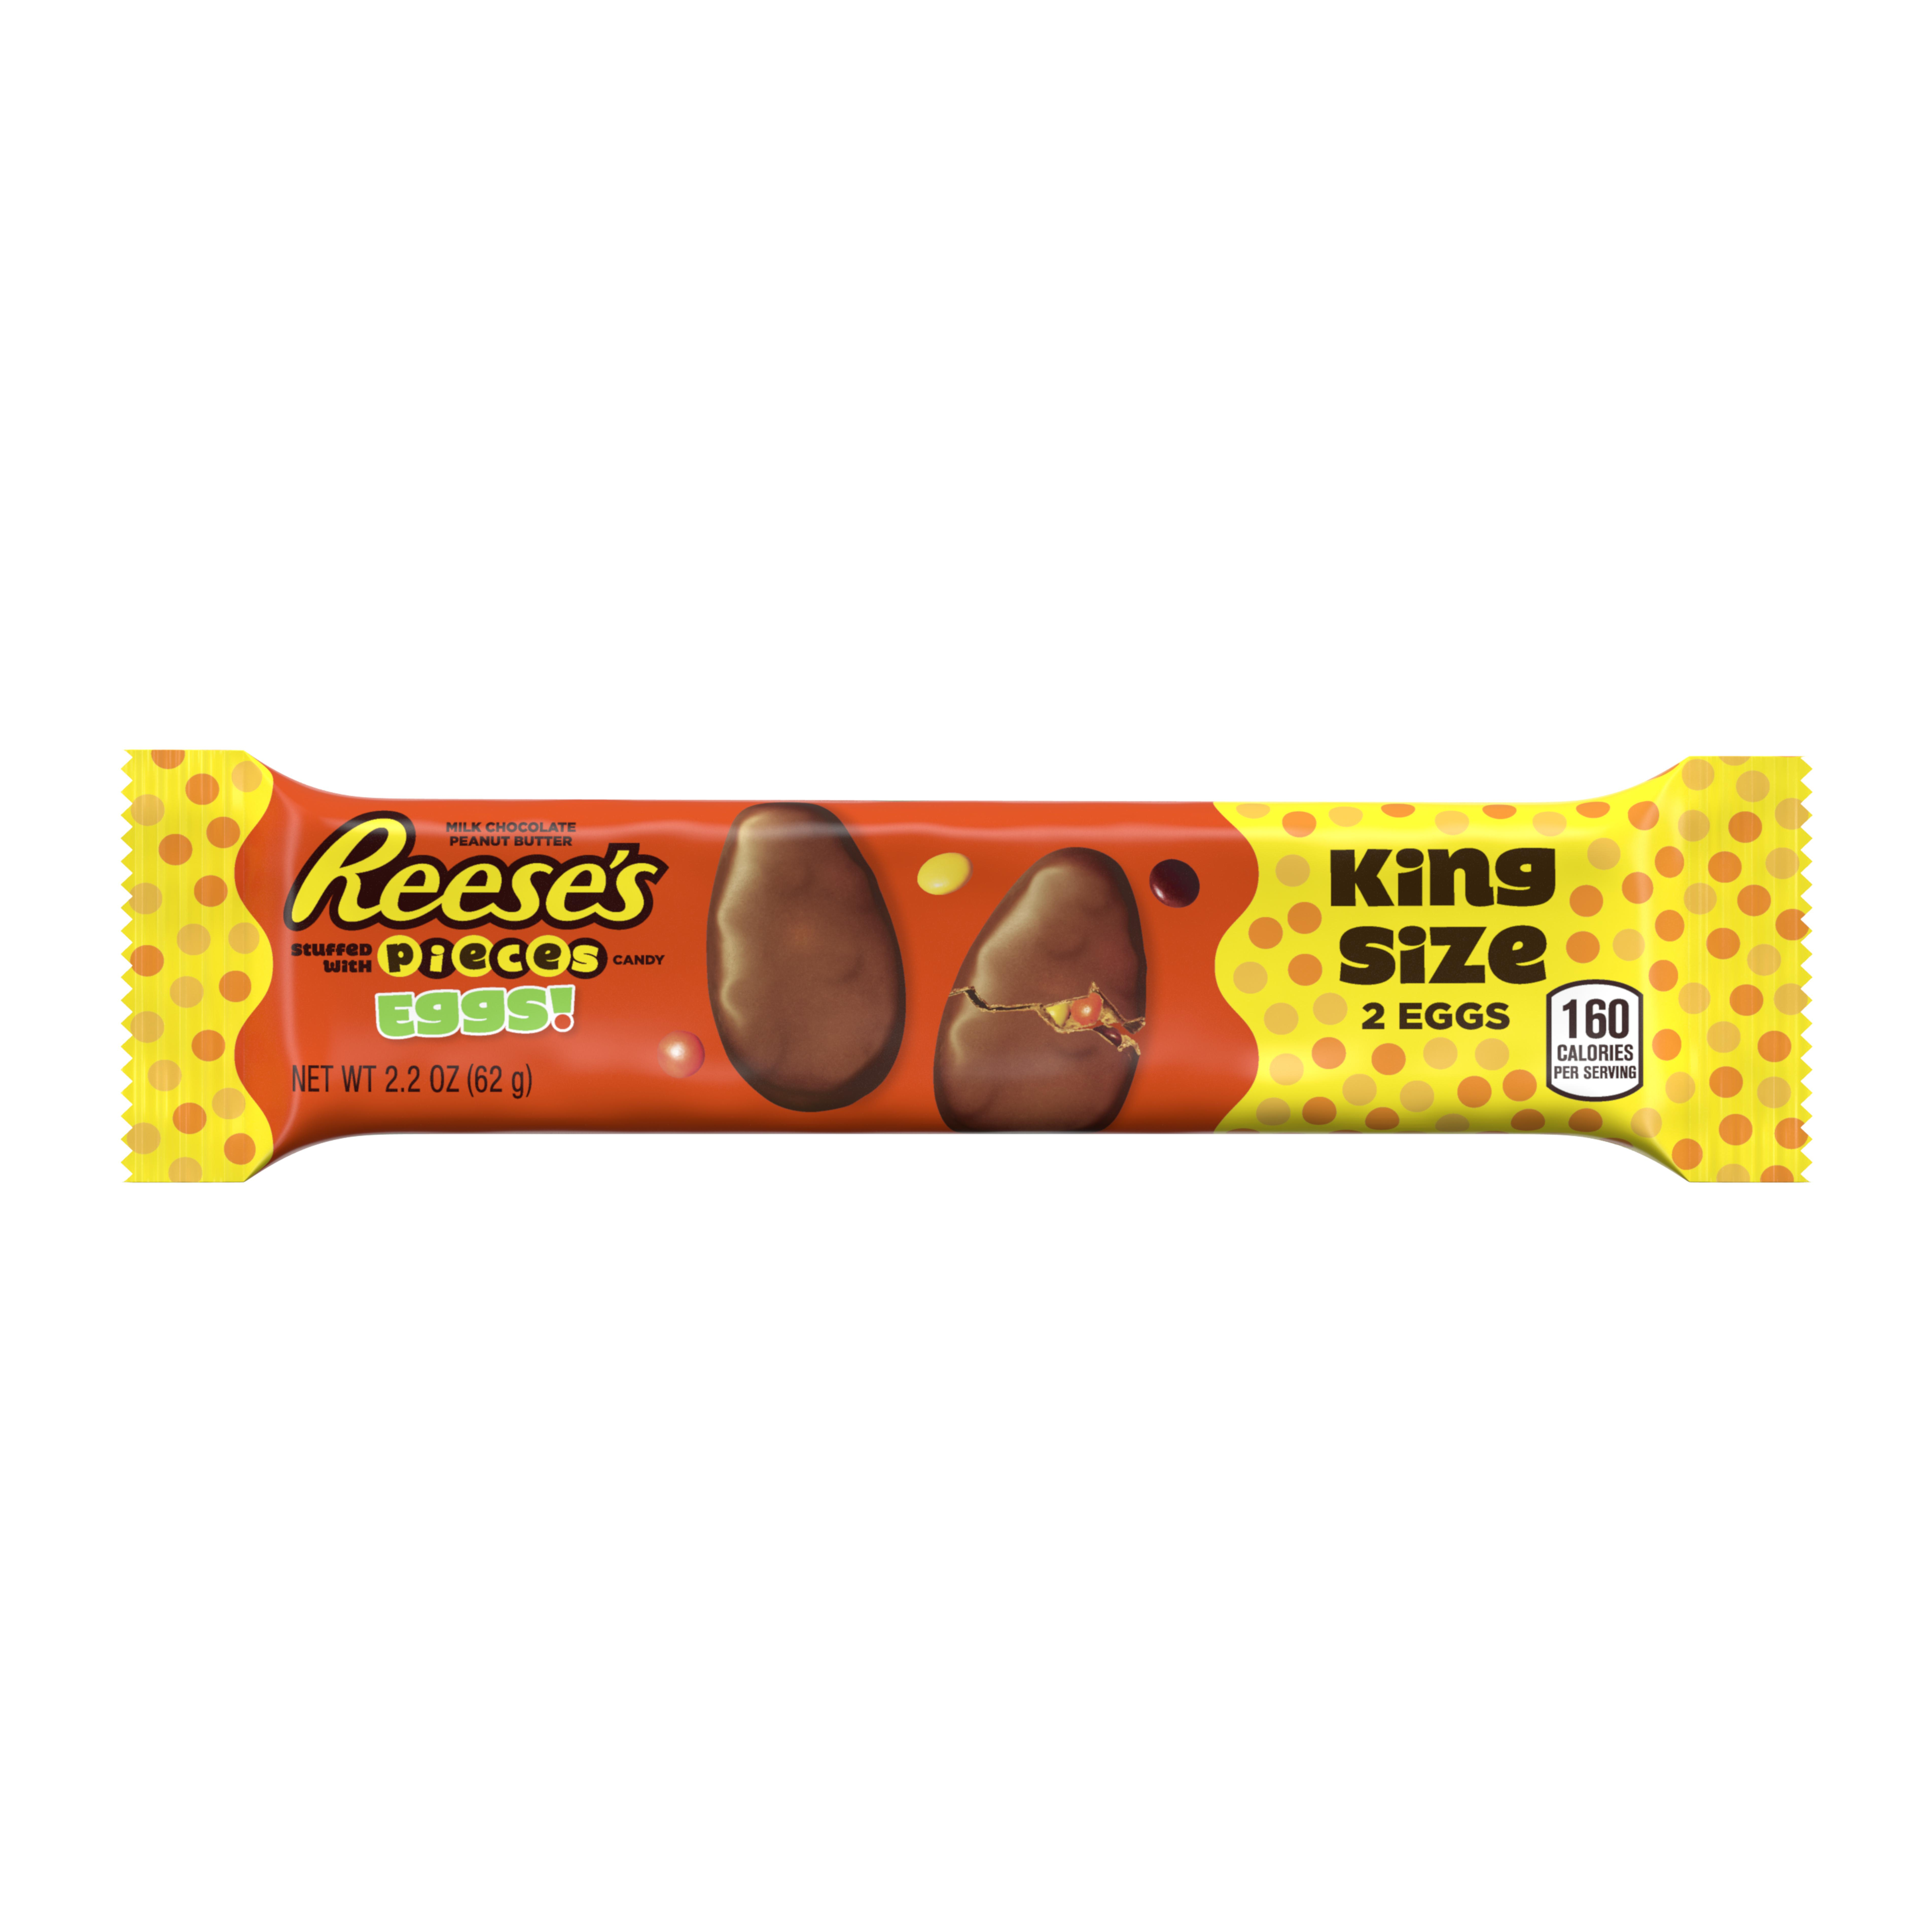 Reese's, Easter Peanut Butter with Reese's Pieces Eggs King Size Candy, 2.2 Oz